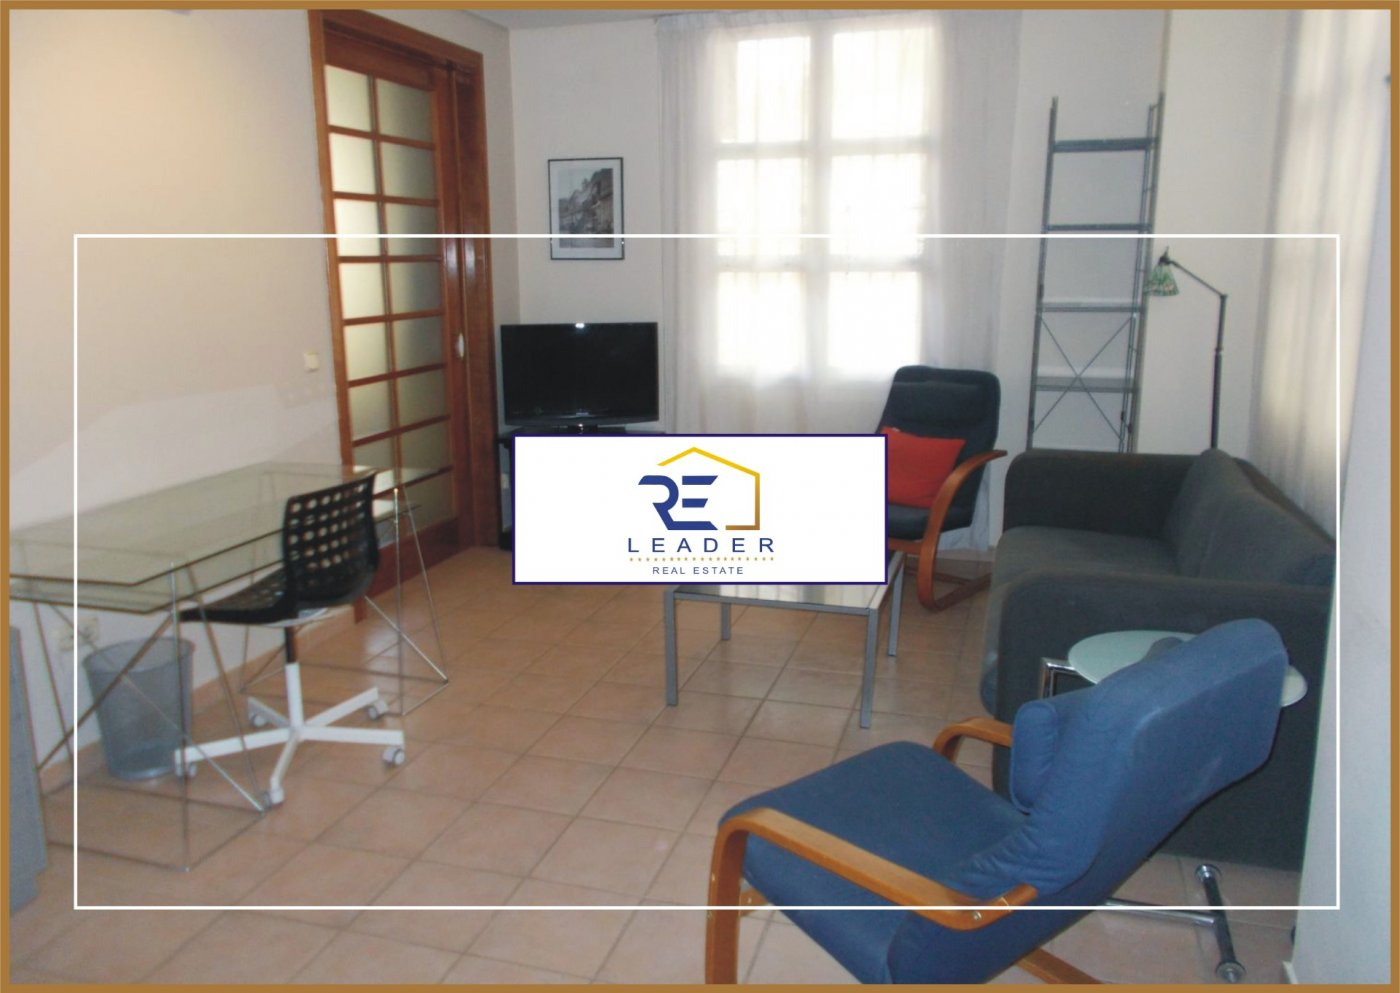 Flat for rent in Gran Vía, Valencia